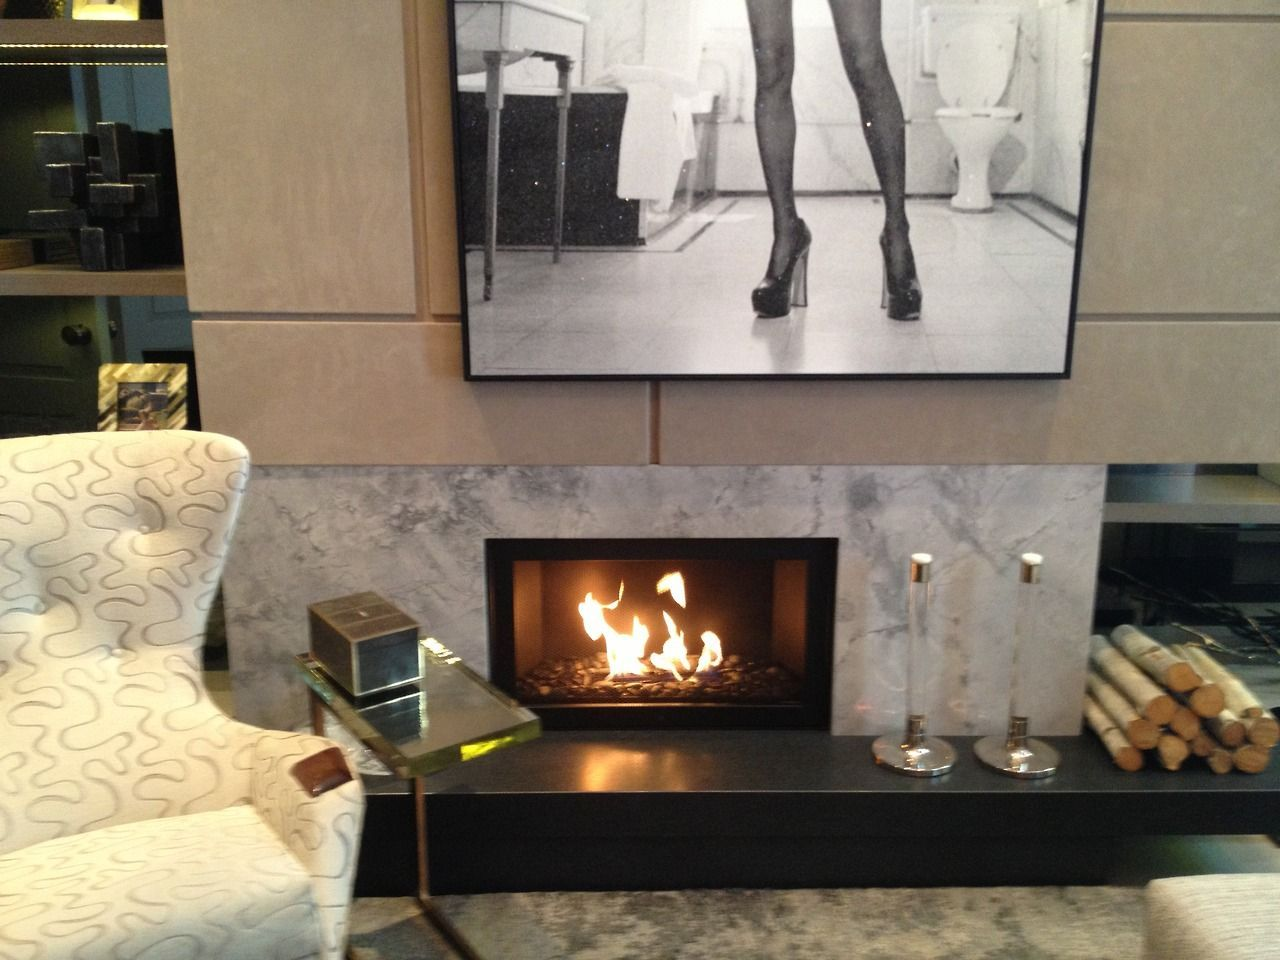 Adding A Fireplace Adding A Fireplace To A House Artificial Fireplace Best Fireplace Insert Best Gas Fireplac With